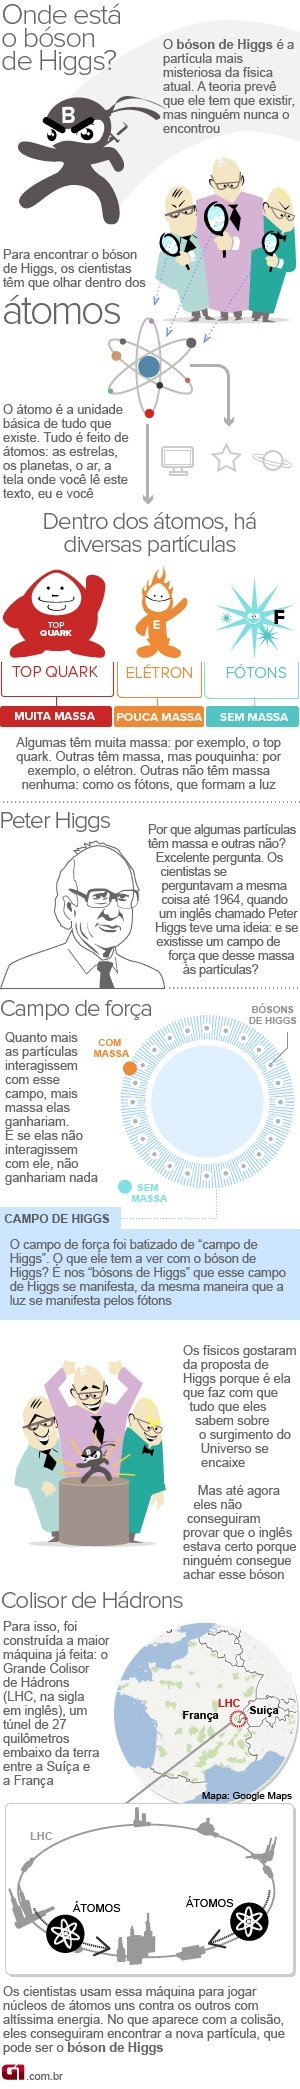 Infogr&#225;fico B&#243;son de Higgs (Foto: Arte/G1)